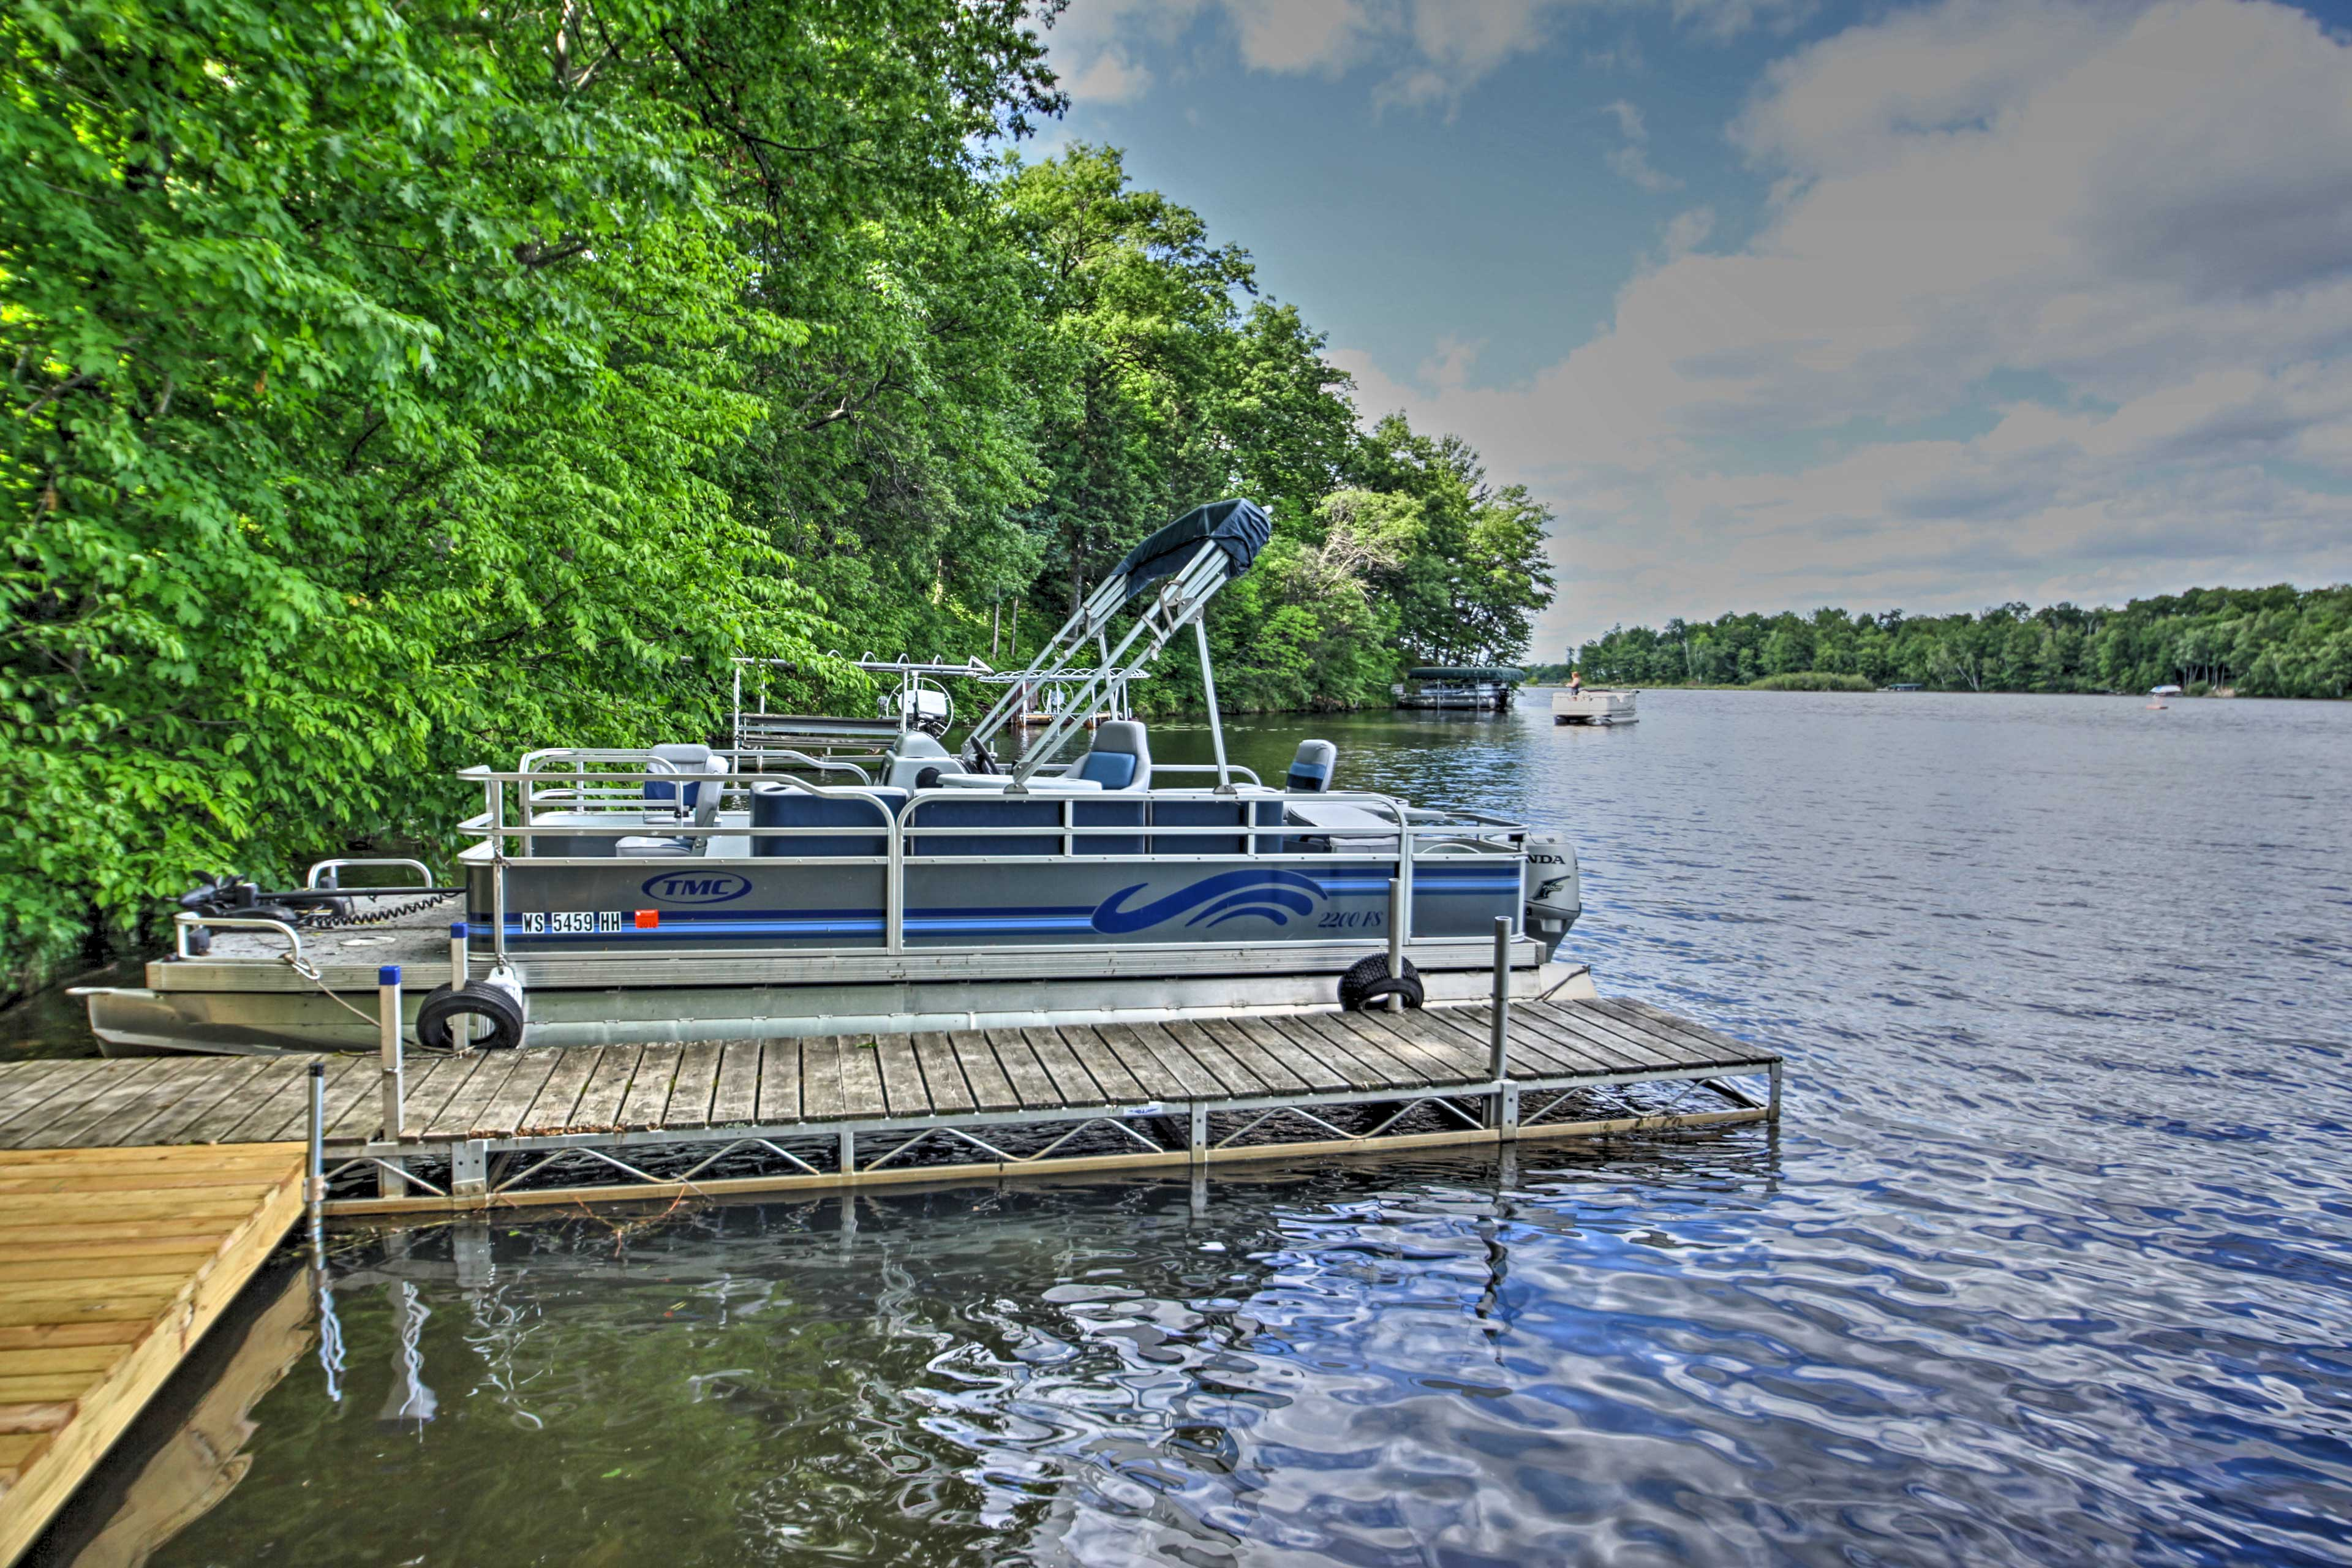 There are 2 fishing pontoons available to rent prior to arrival.